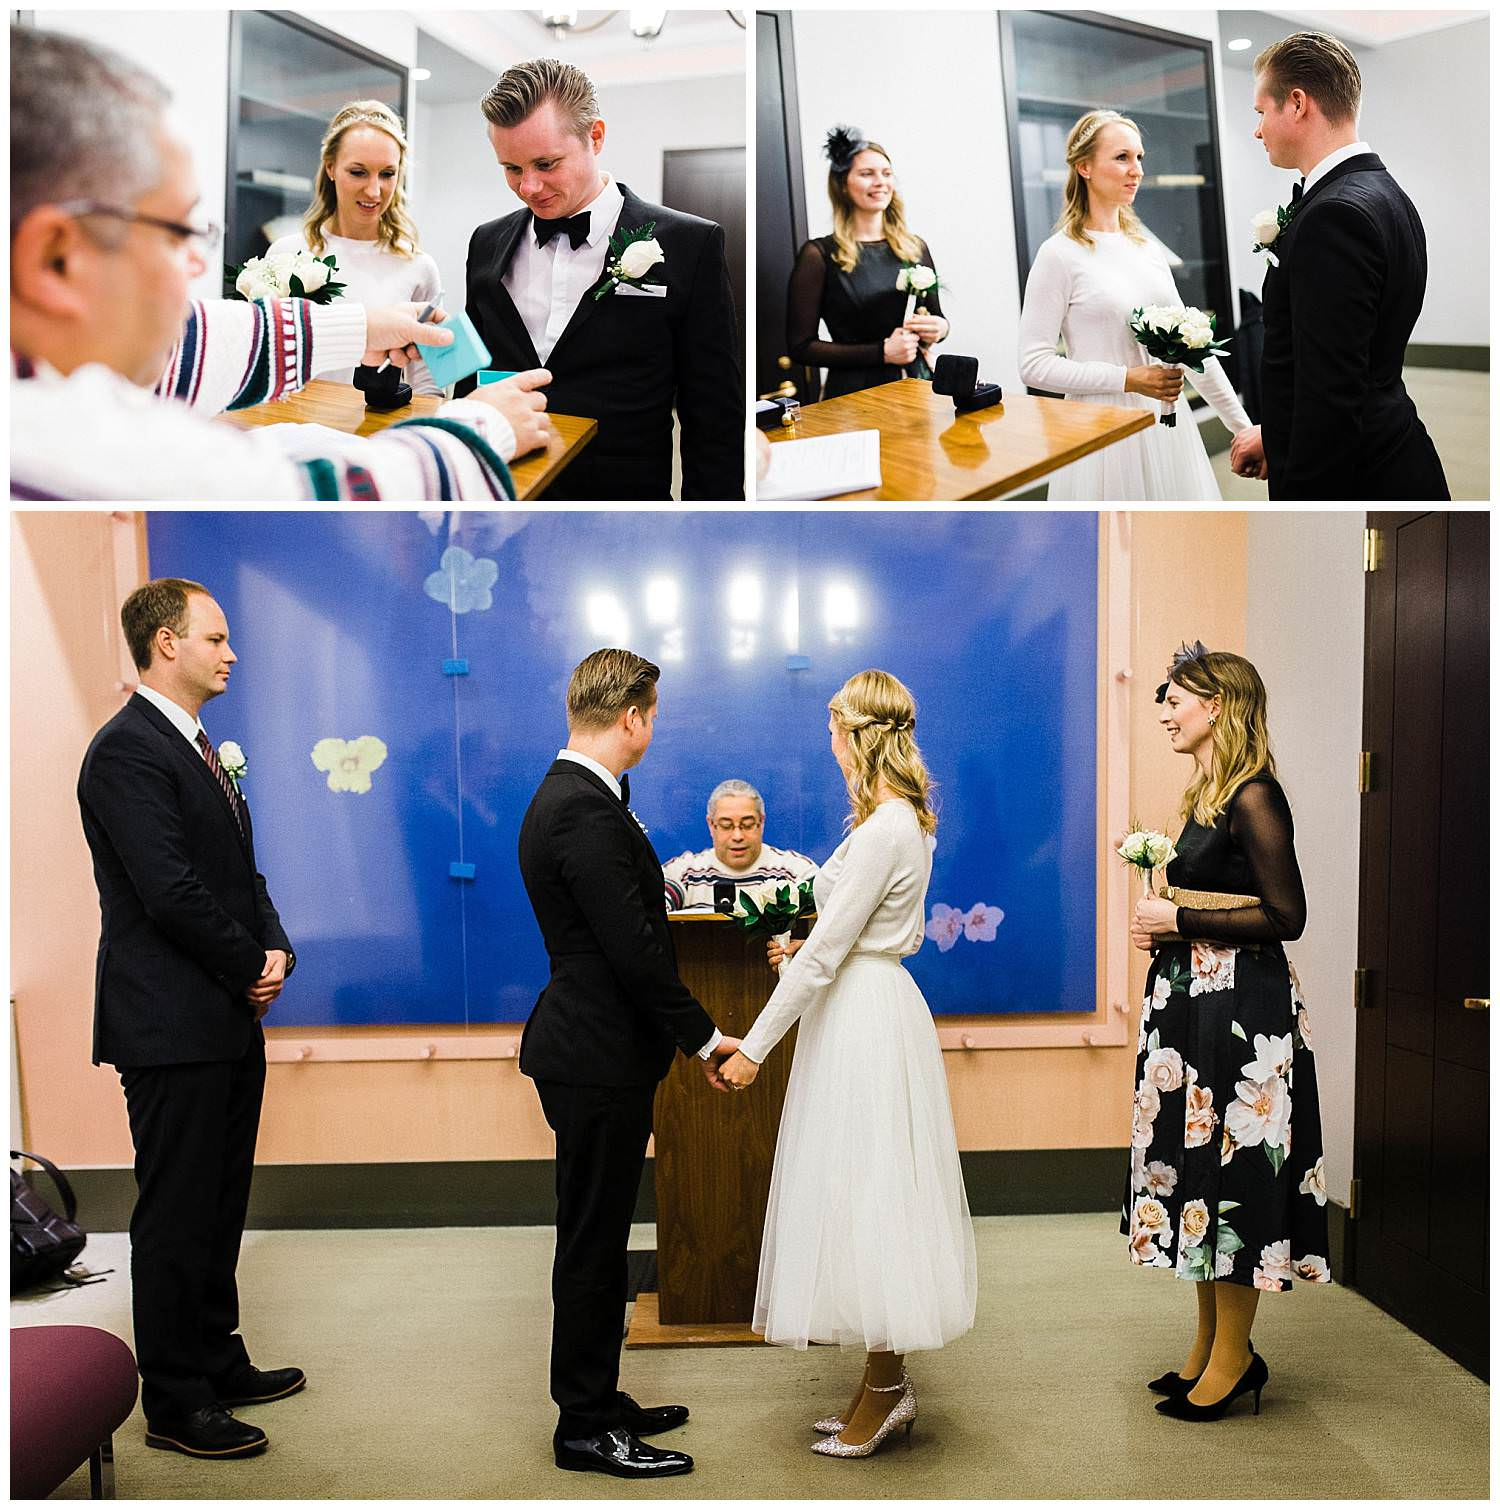 bride-and-groom-get-married-at-the-city-clerk